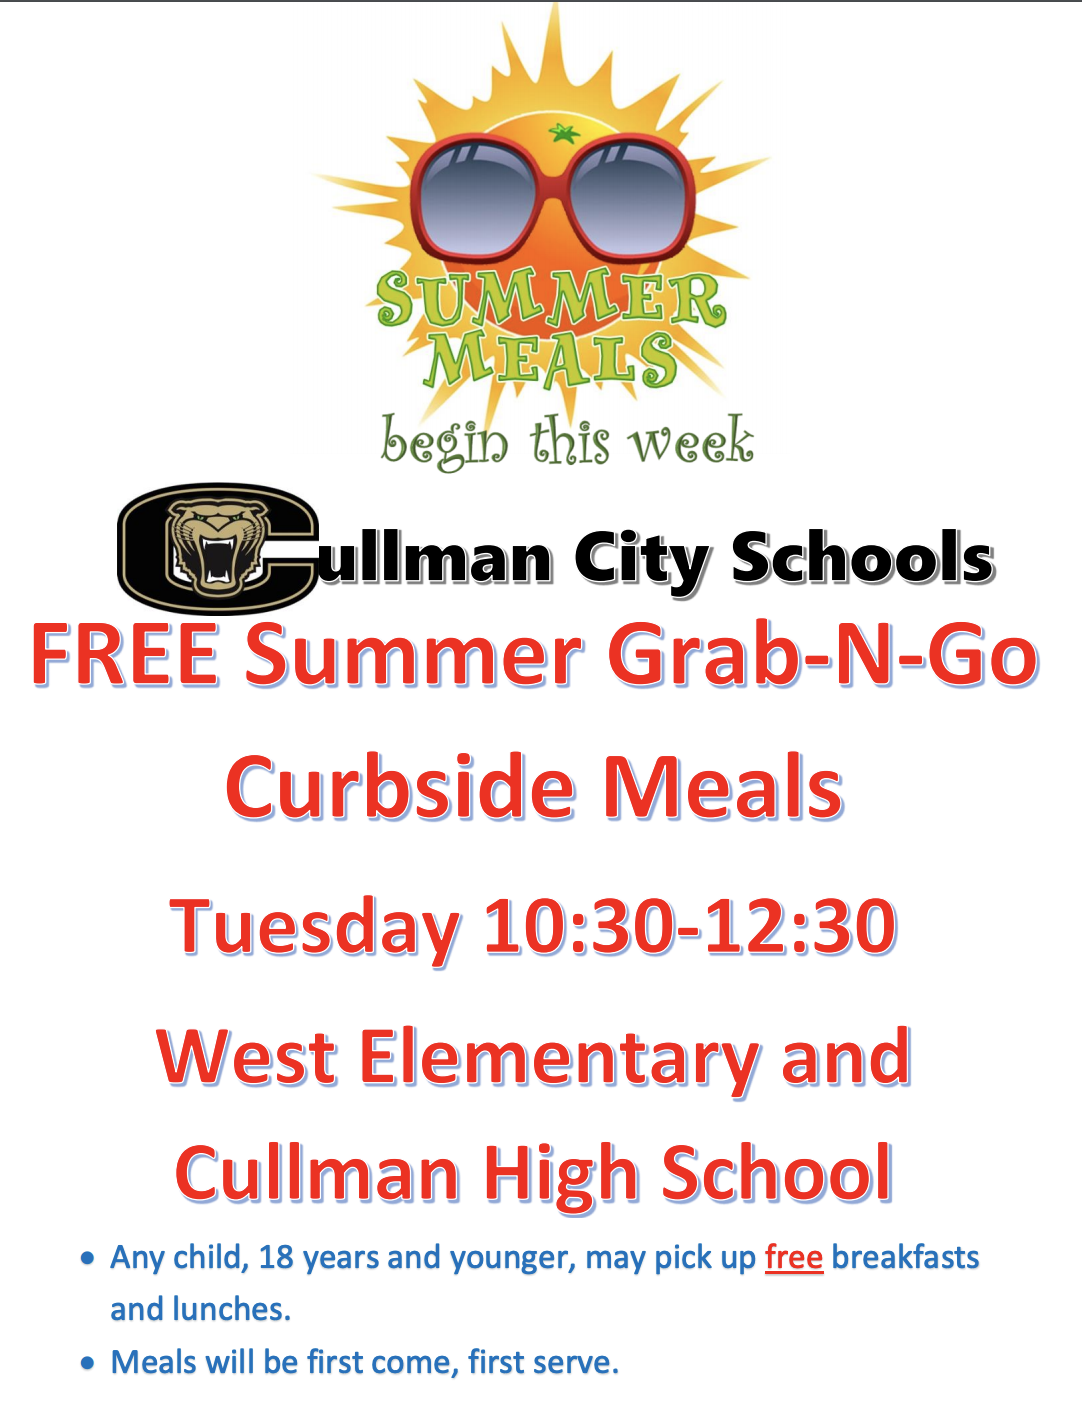 free grab and go meals for ccs students on tuesday 10:30-12:30 at cullman high school and west elem